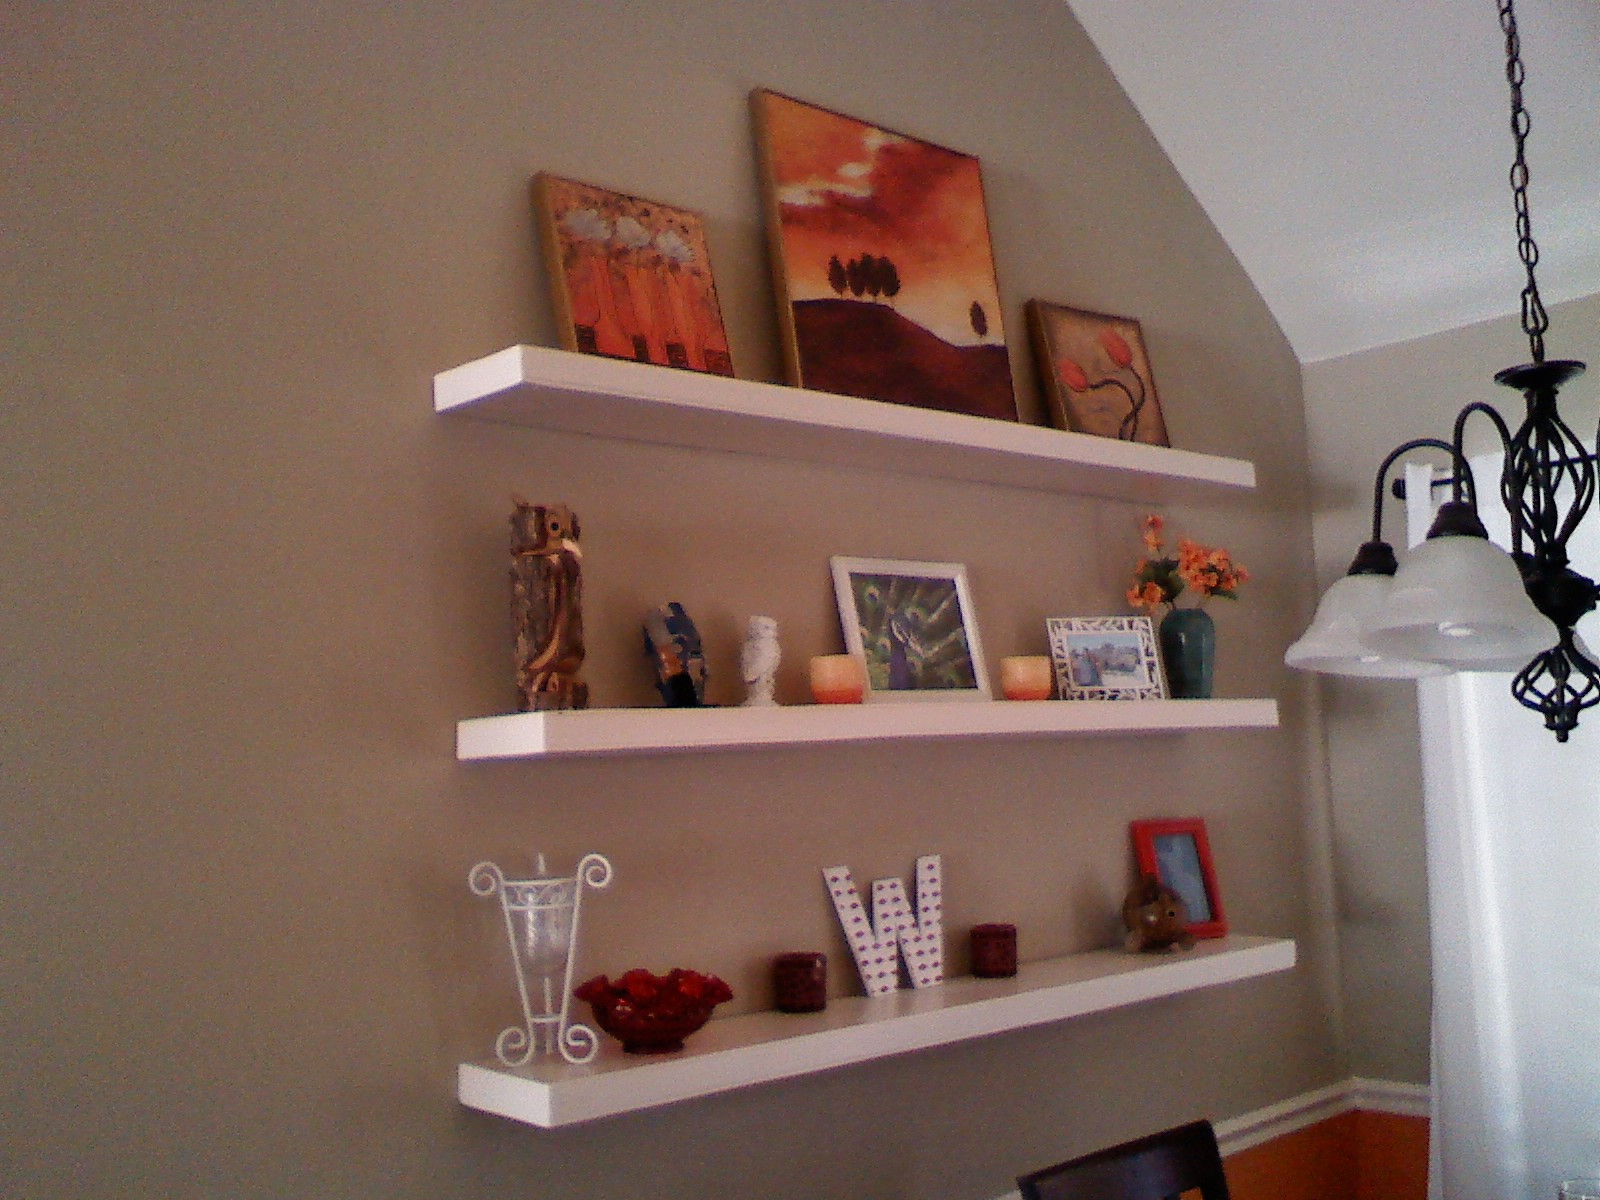 Best ideas about DIY Floating Wall Shelf . Save or Pin Workman Witticisms DIY Floating Shelves Now.